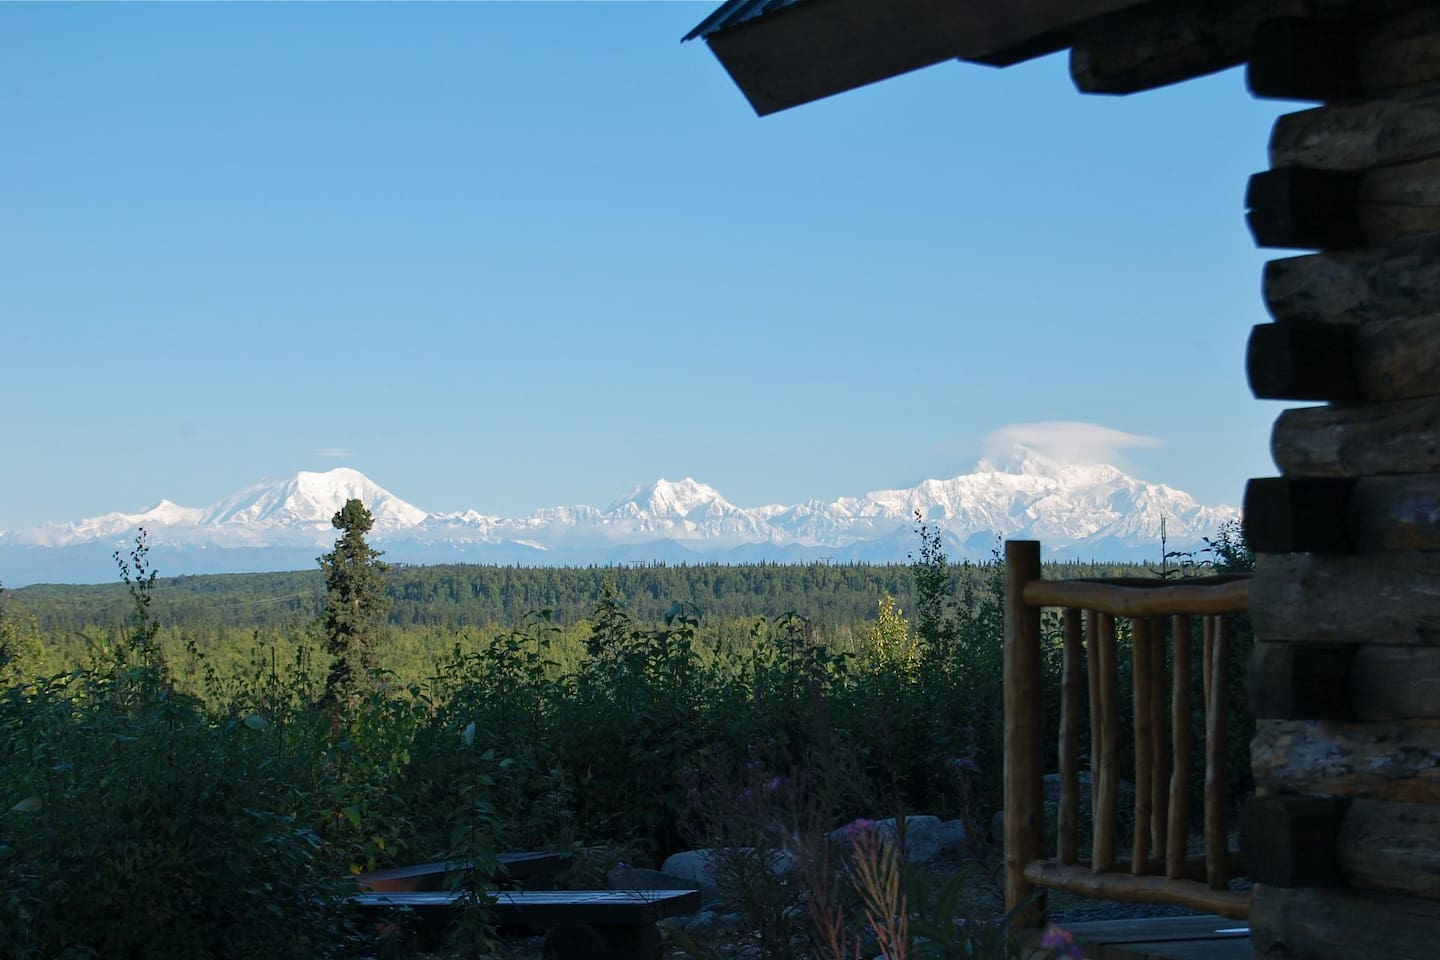 Alaska Range with Denali. View from your cabin.